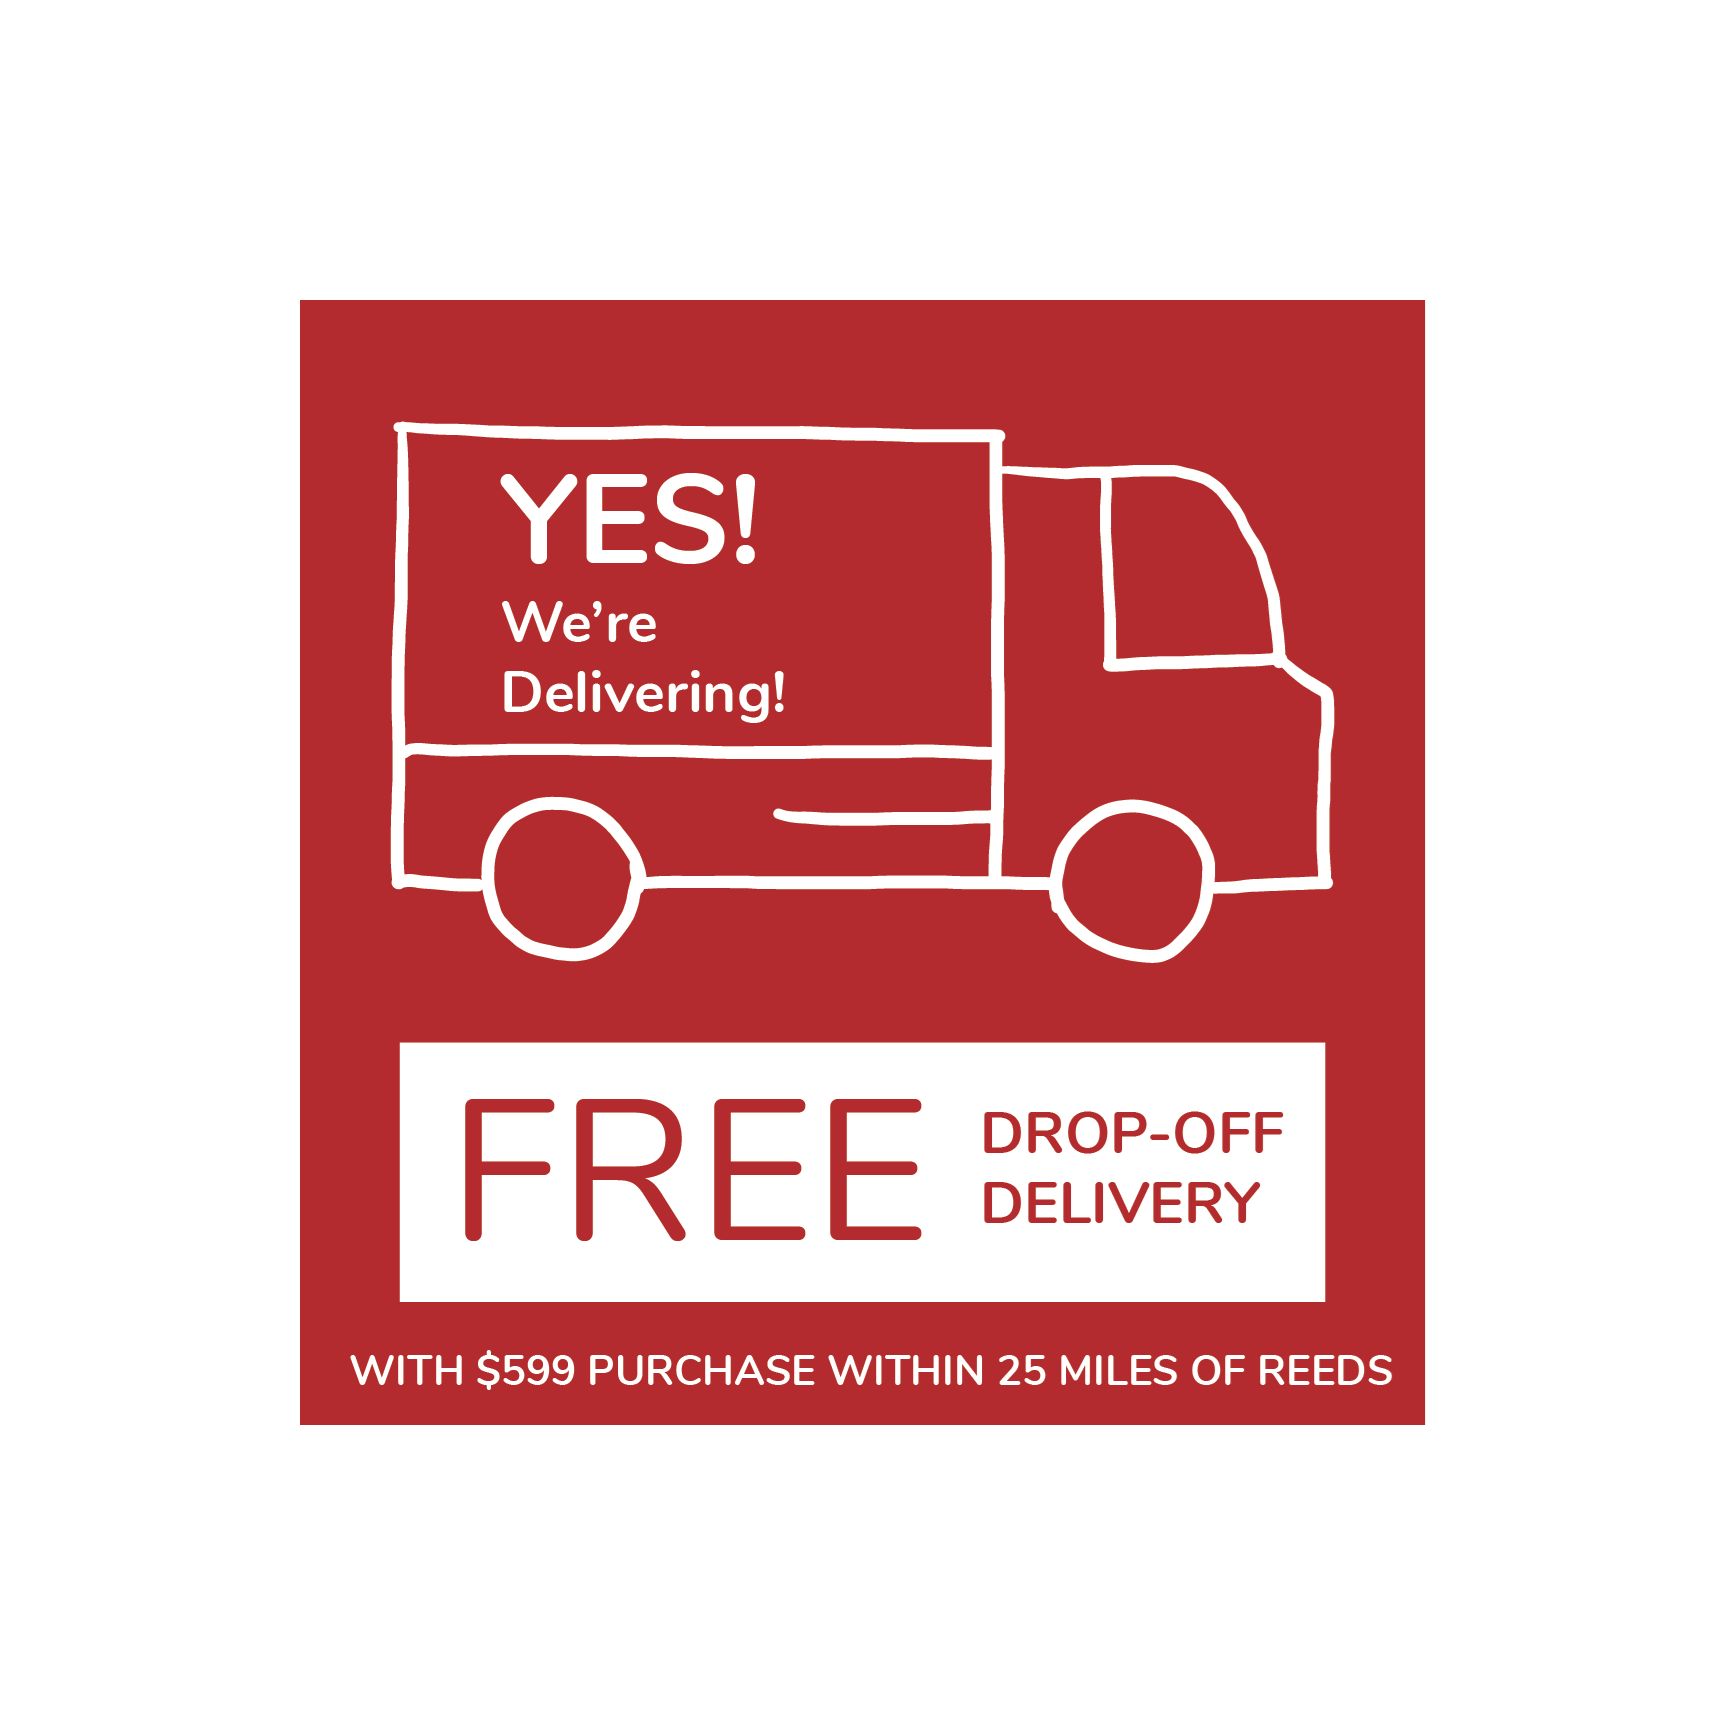 Reeds Free Drop Off Delivery